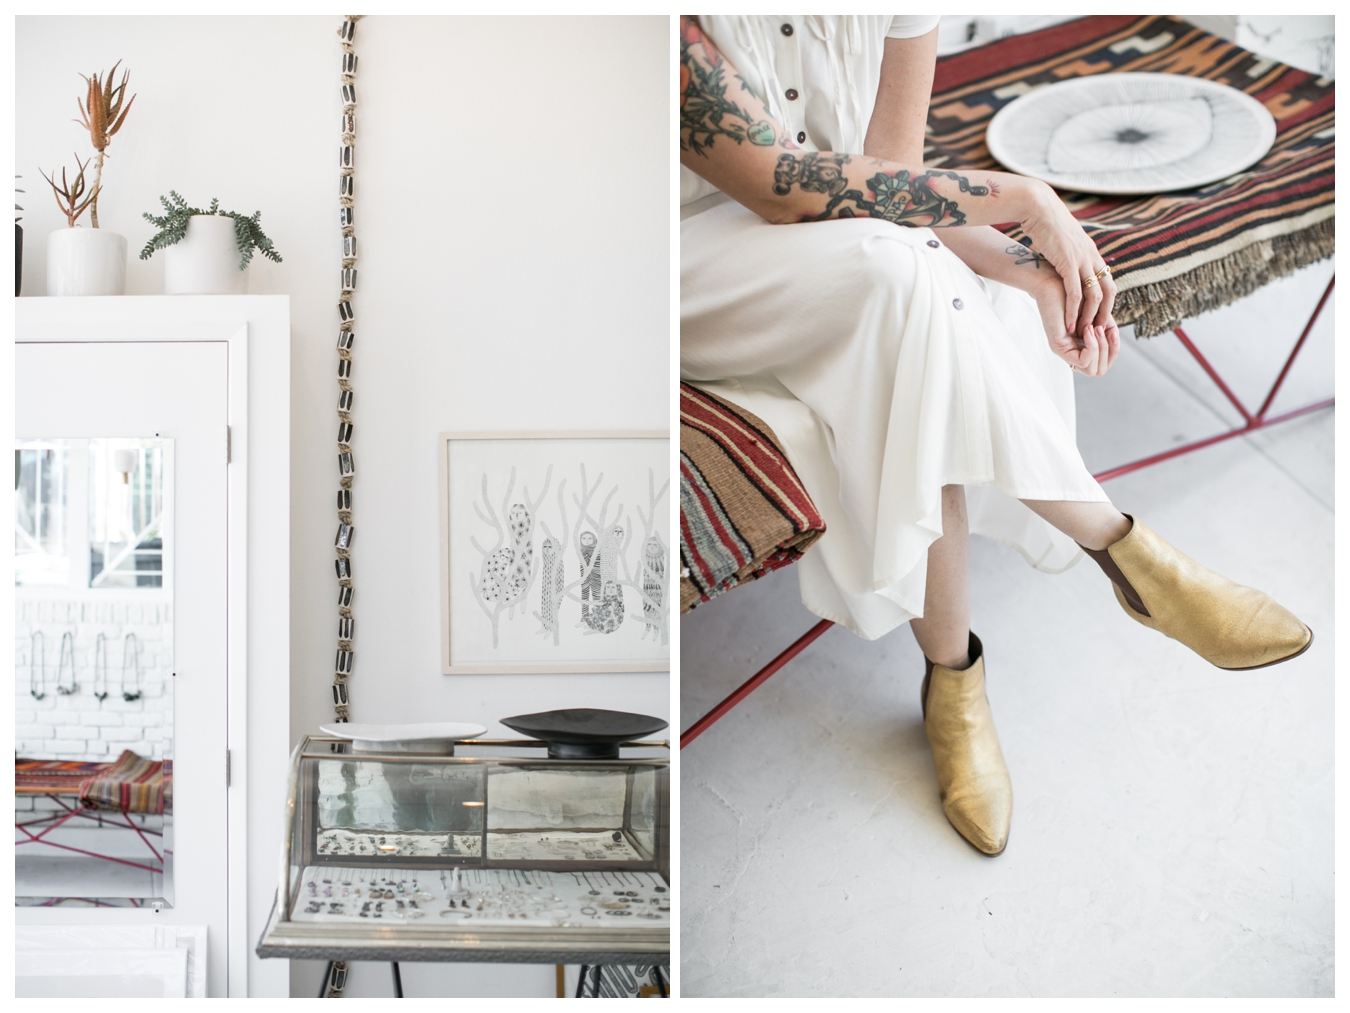 lily glass interiors for sf girl by bay | around l.a.